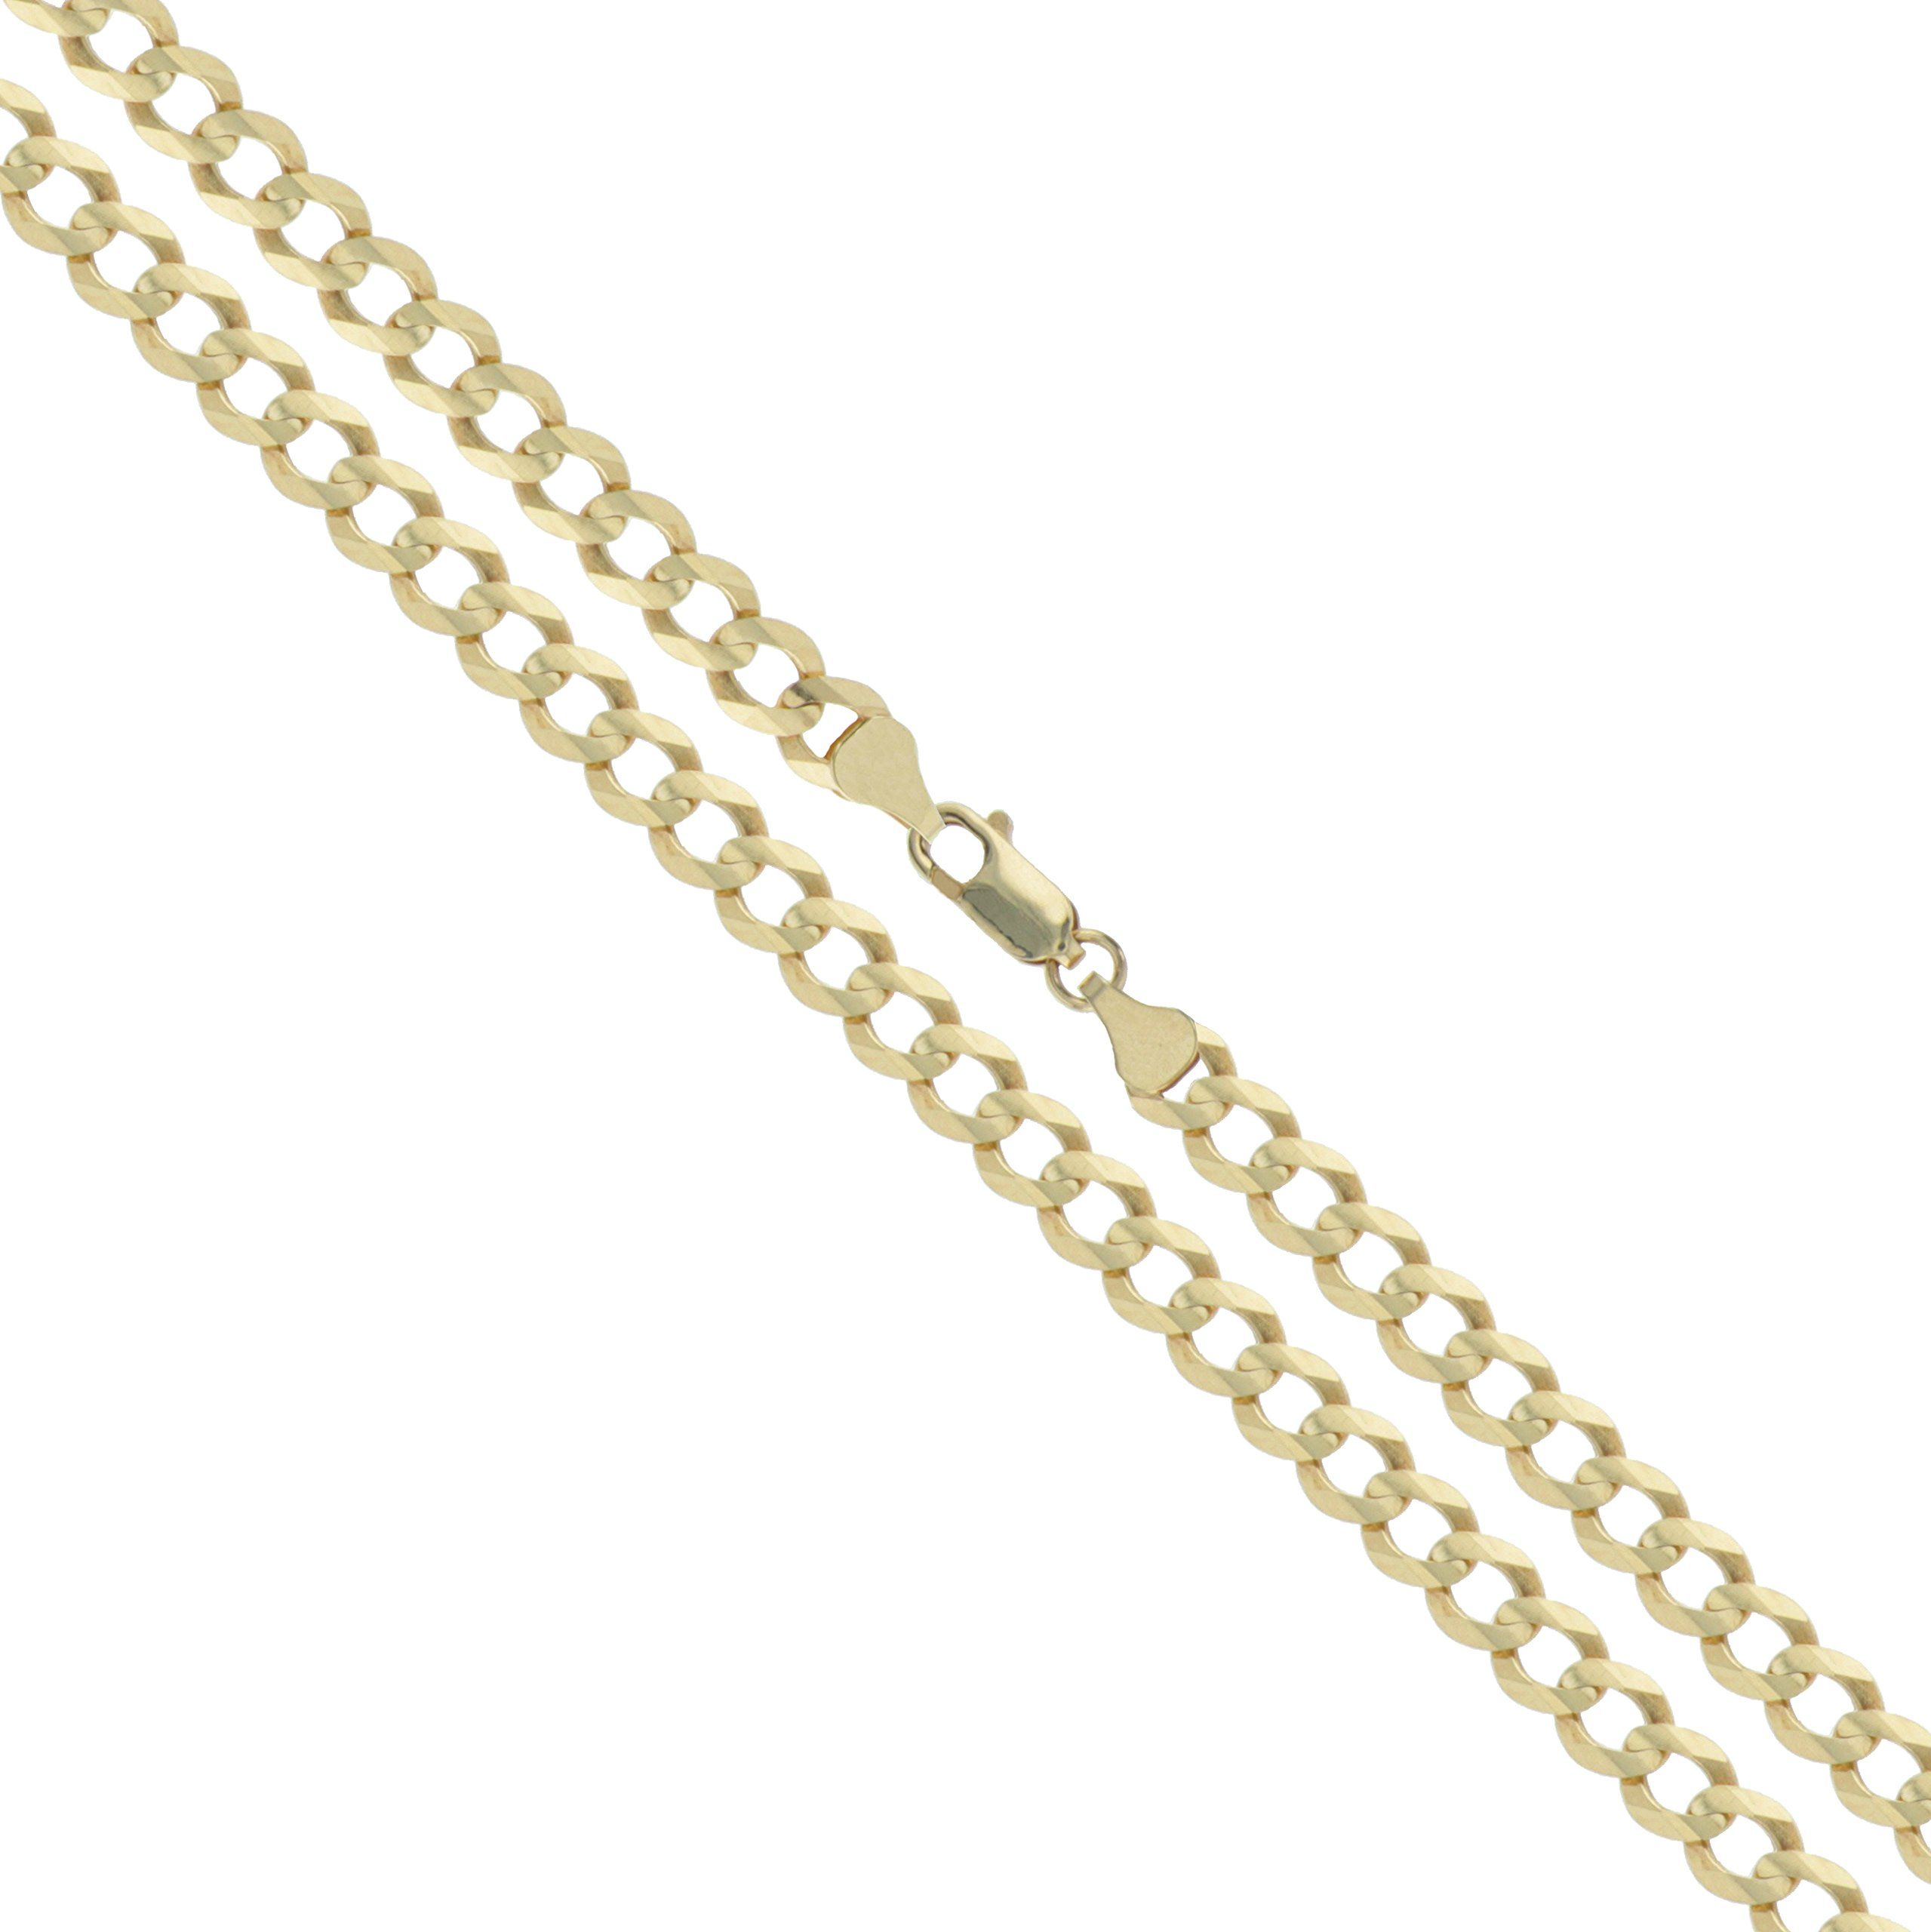 10k Yellow Gold Solid Curb Chain 2.5mm Link Necklace 20''